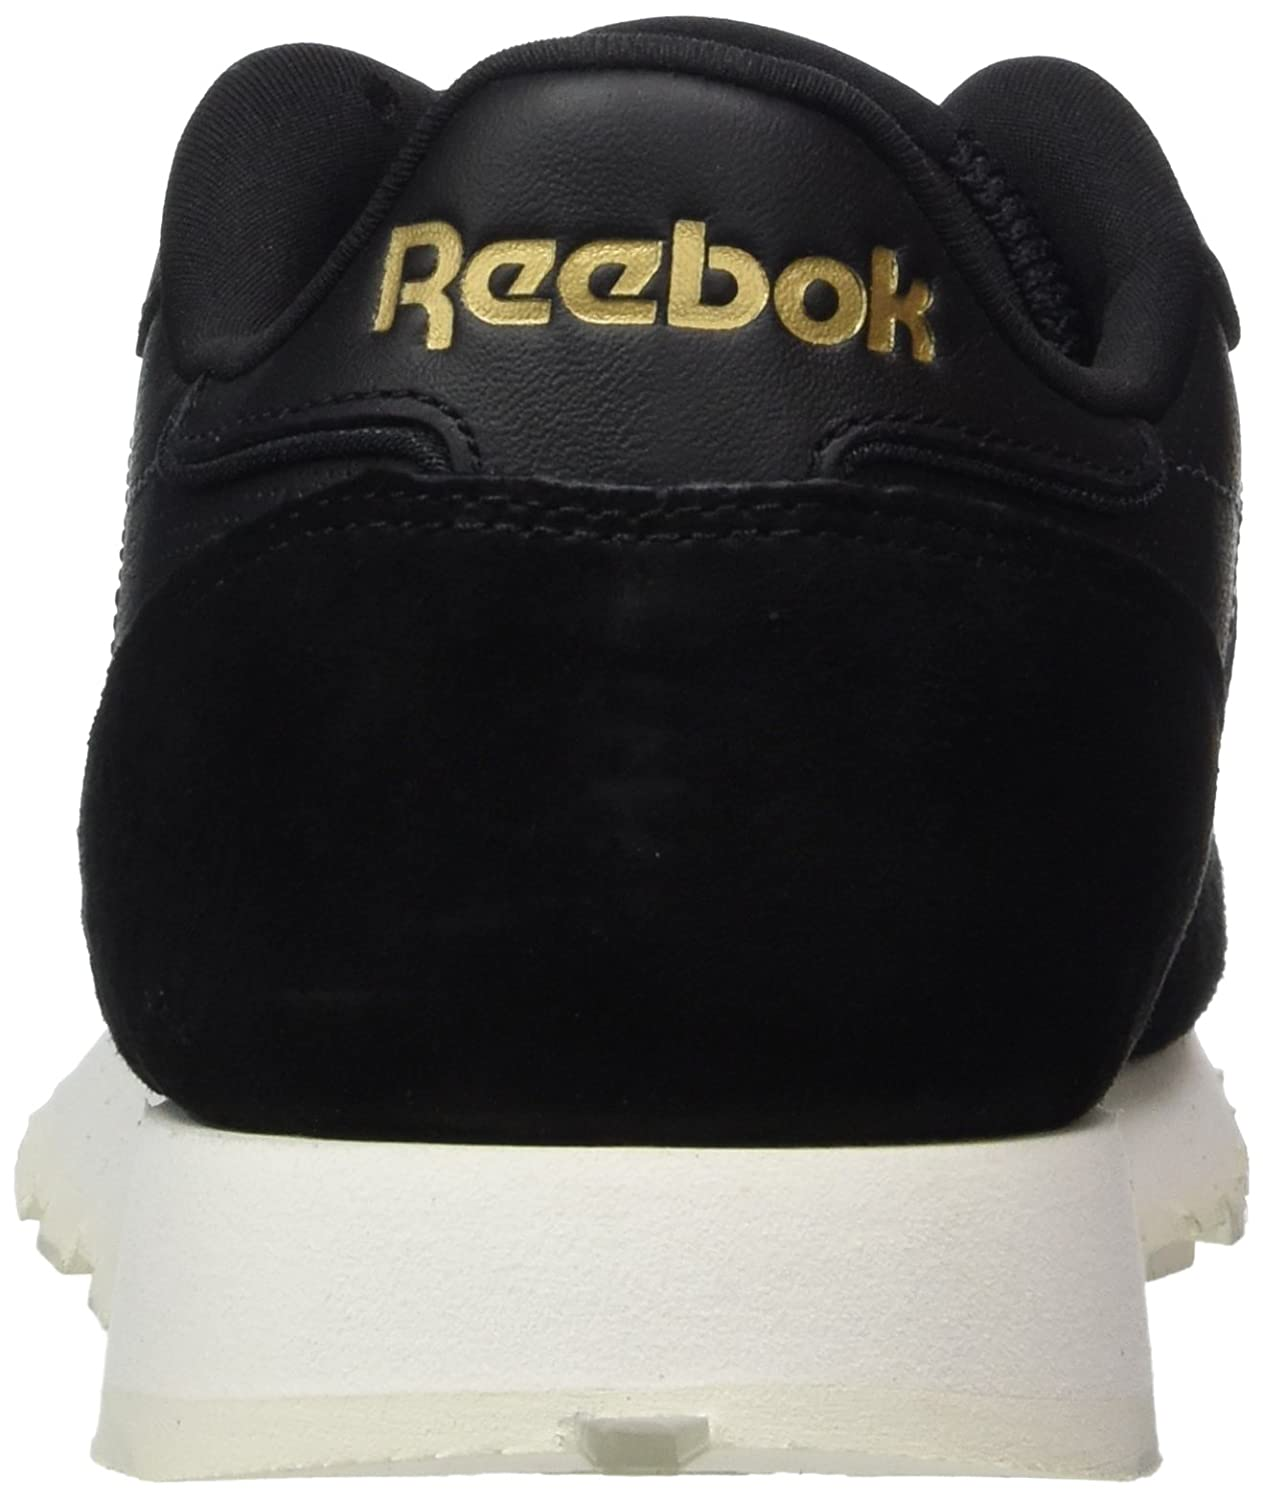 5862fd6727869 Reebok Men s s Classic Leather Alr Low-Top Sneakers  Amazon.co.uk  Shoes    Bags